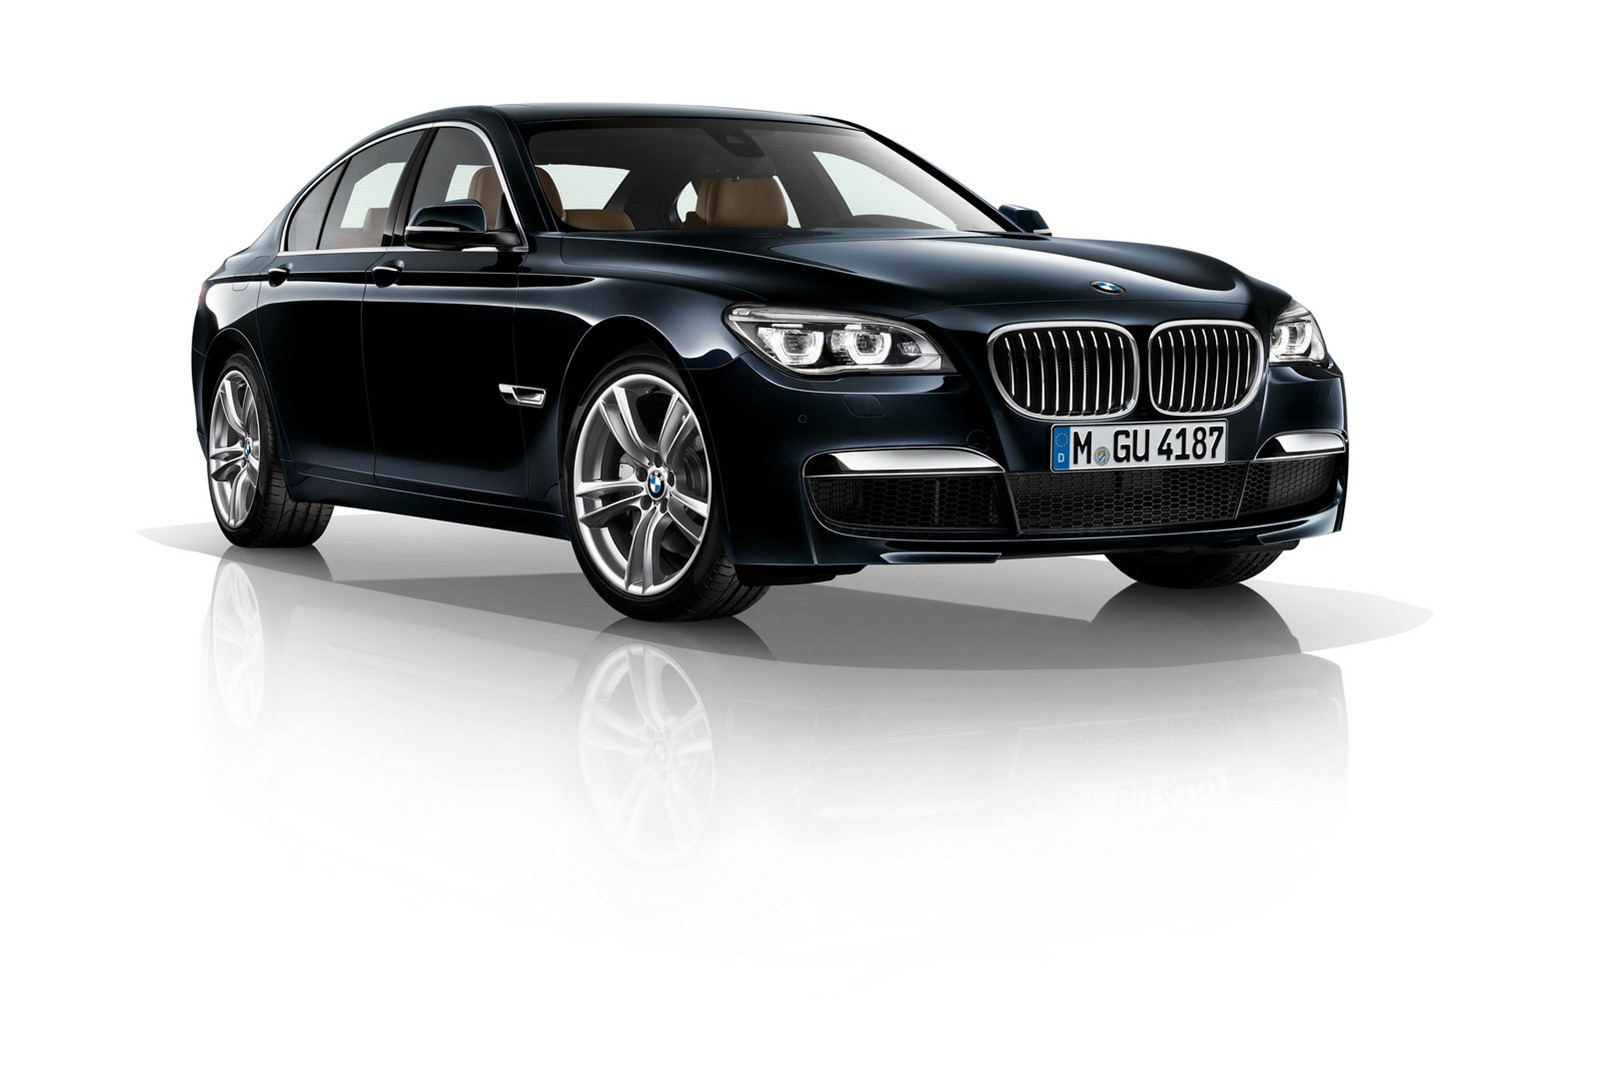 F01 BMW 7 Series facelift